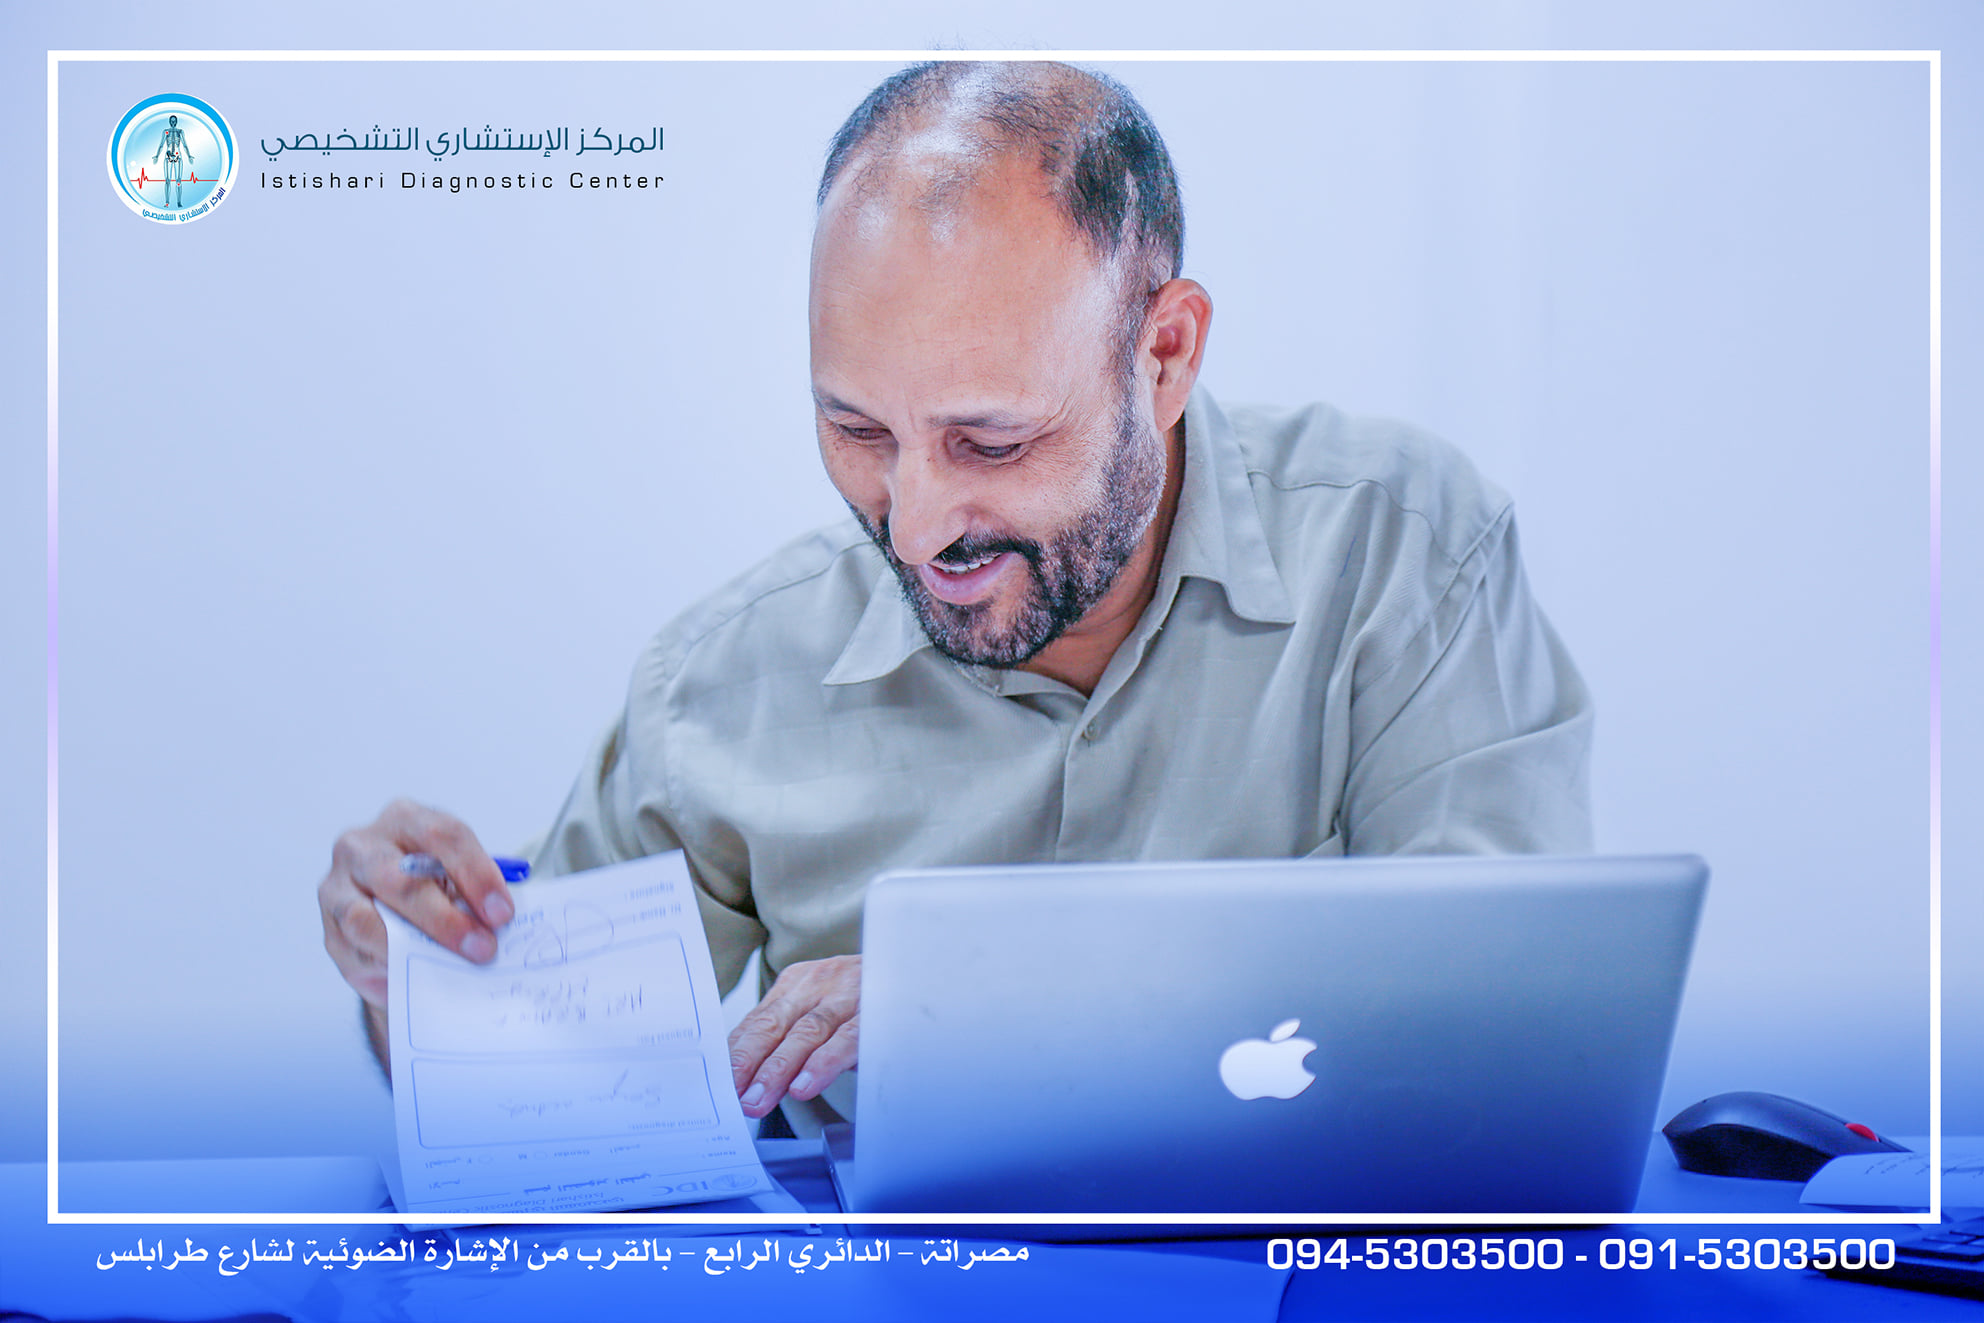 Mr Eljamel in promotional materials for his work in the Middle East.